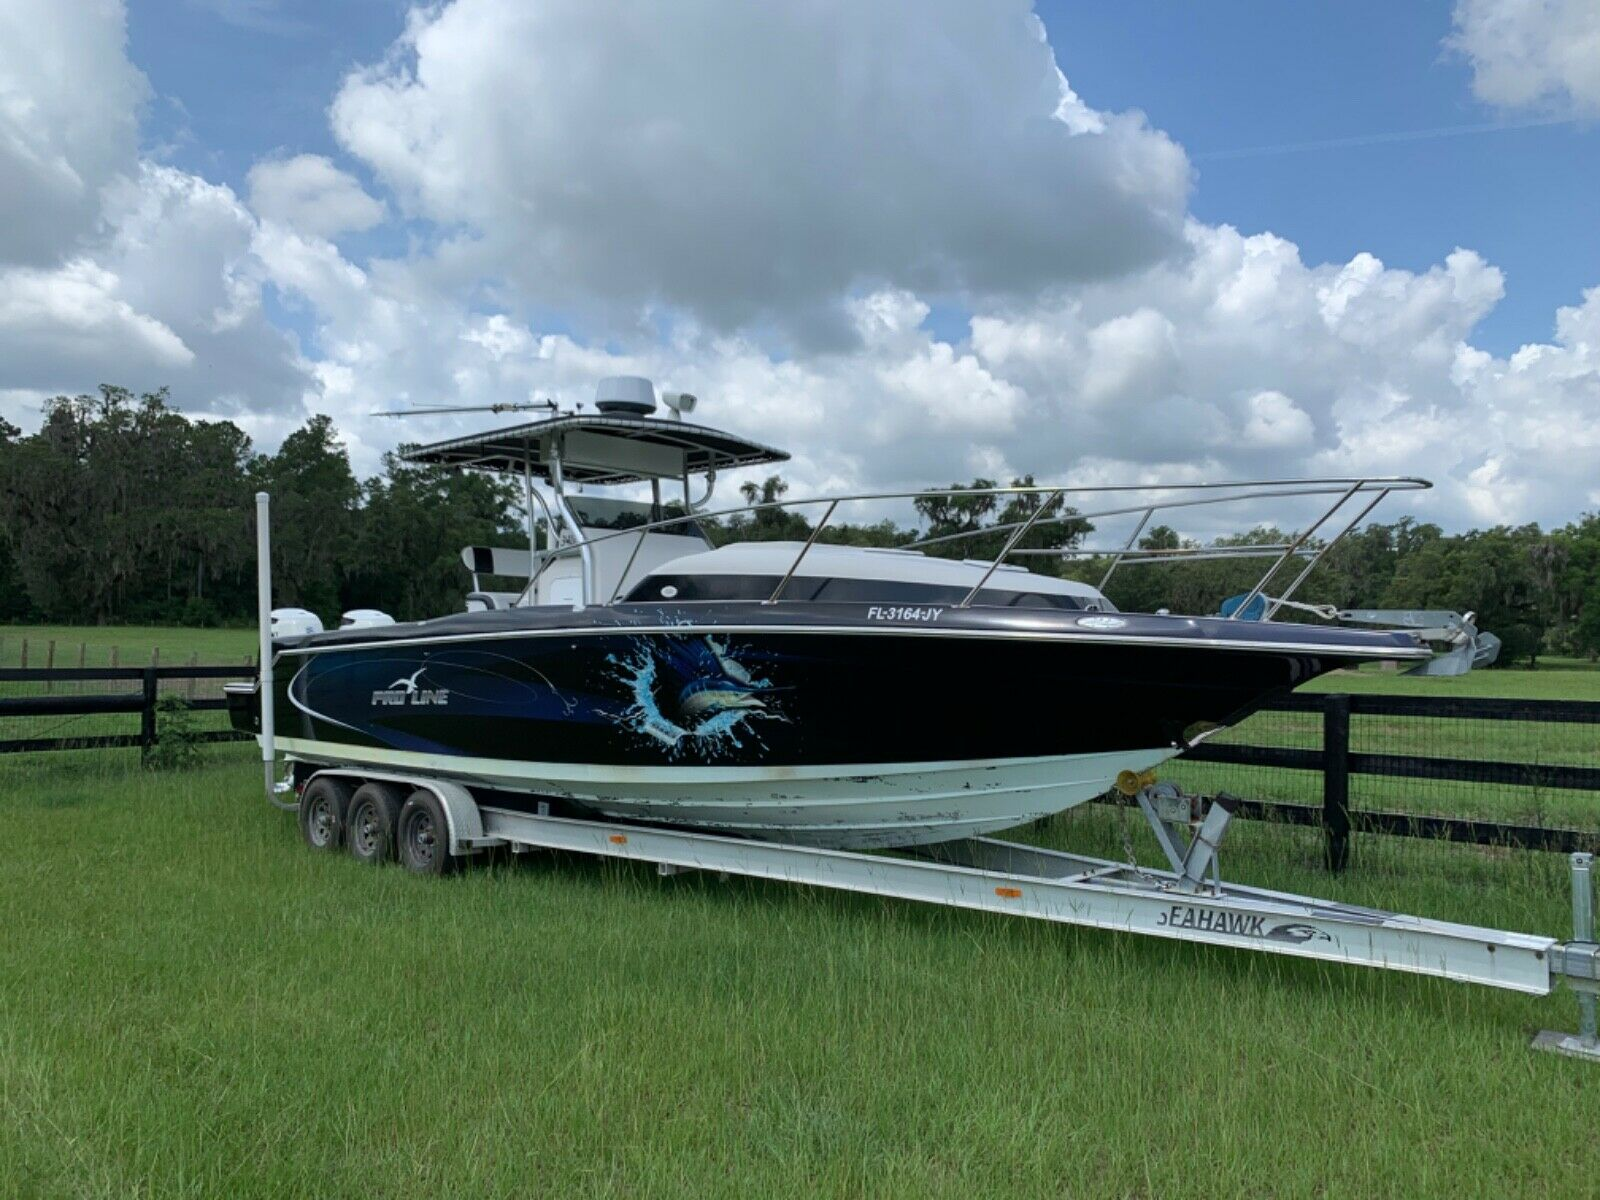 34 foot center console boat with twin 300s cuddy cabin and trailer